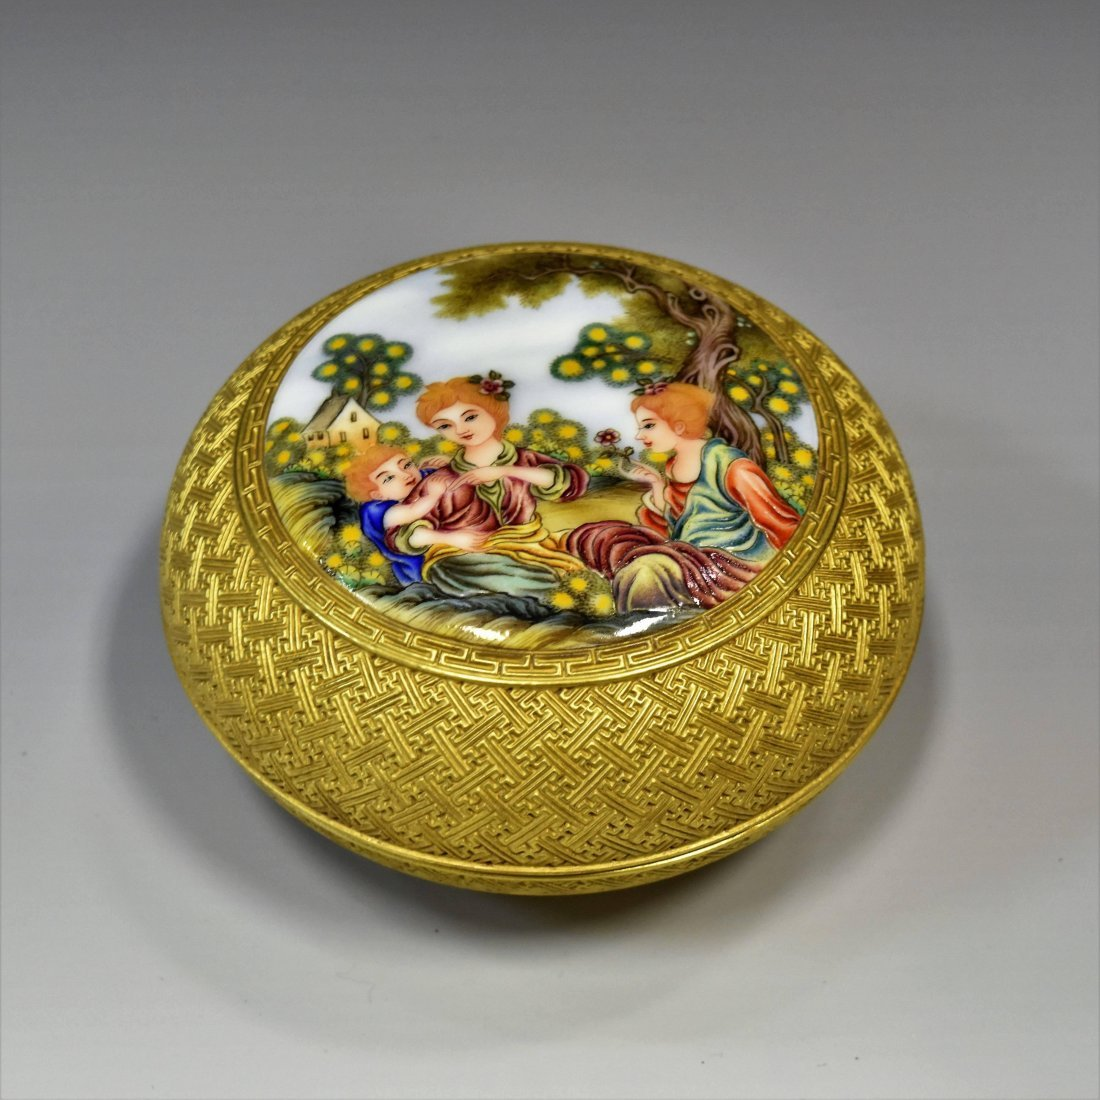 CARVED GILT PORCELAIN ROUND BOX